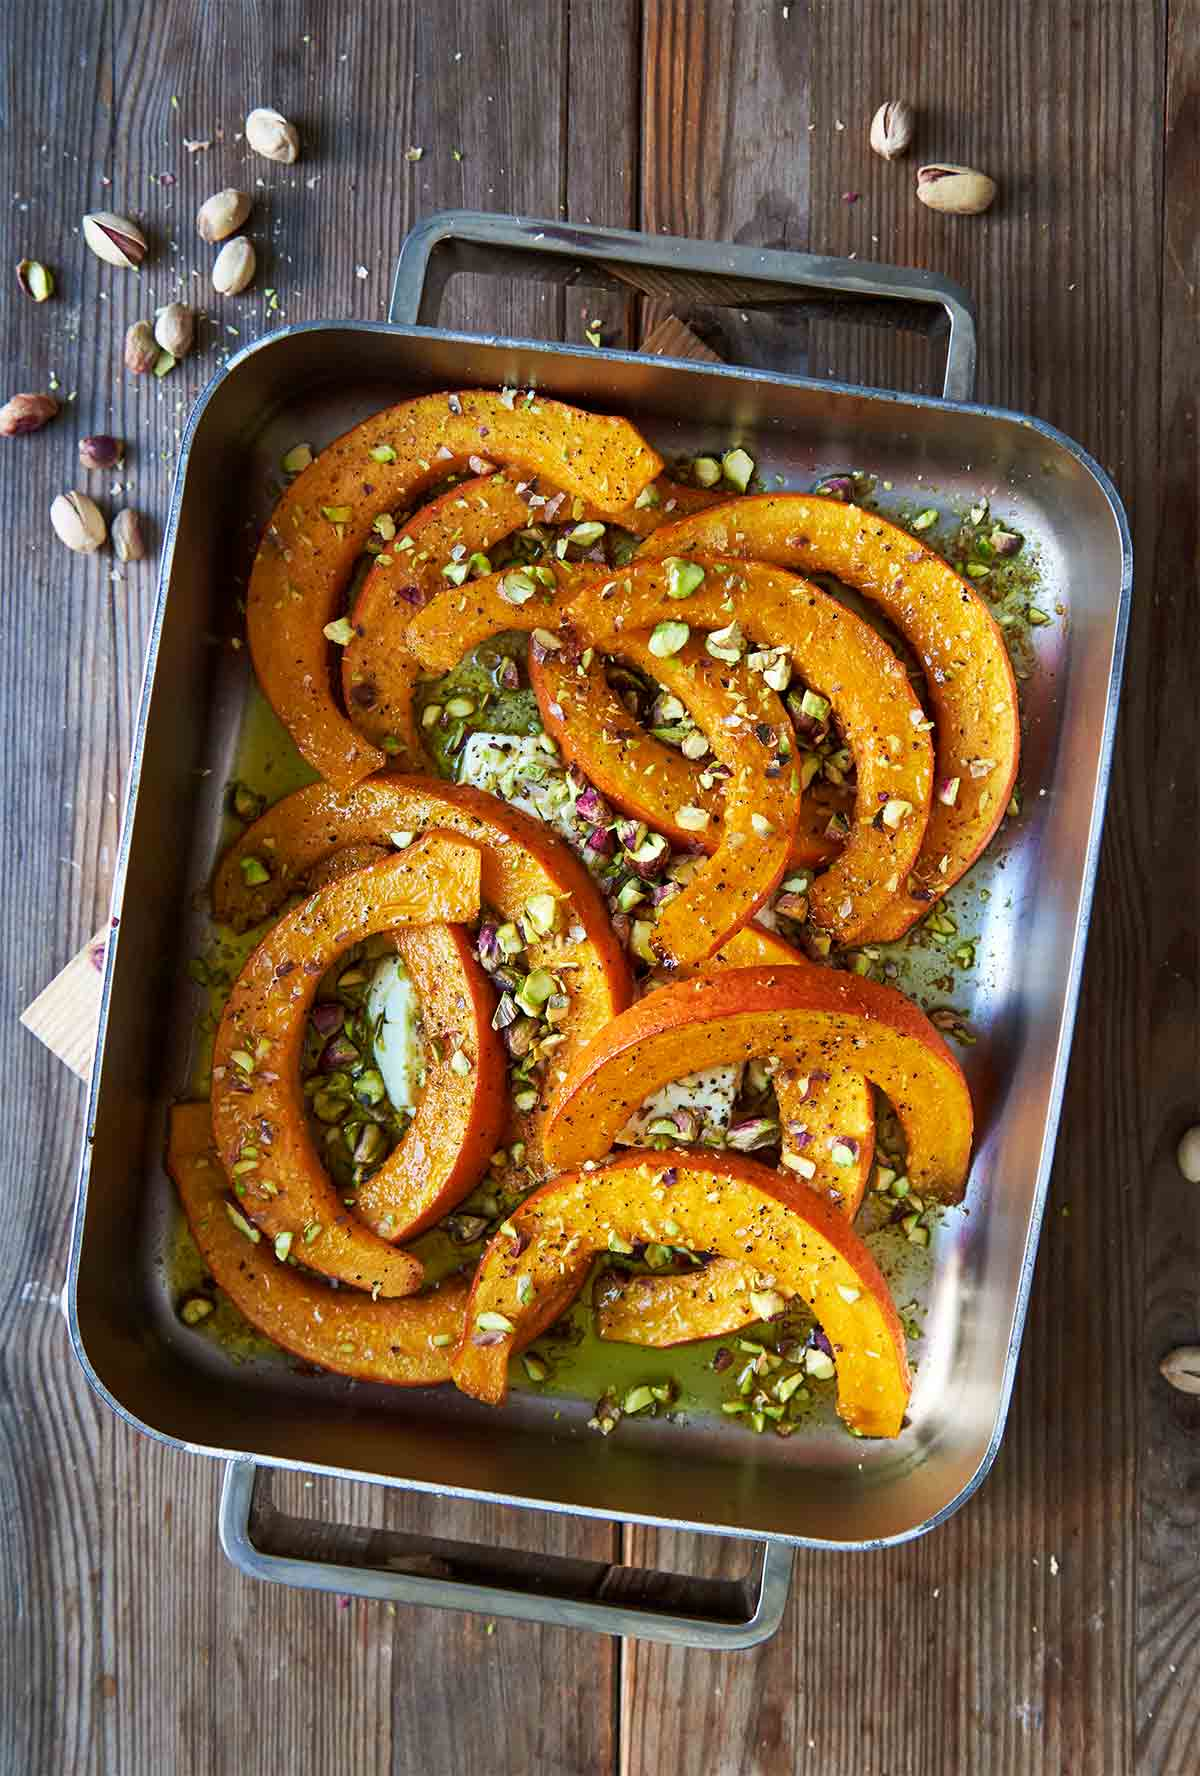 A metal roasting pan filled with roast squash, feta, and pistachios on a wooden table with pistachios scattered around it.